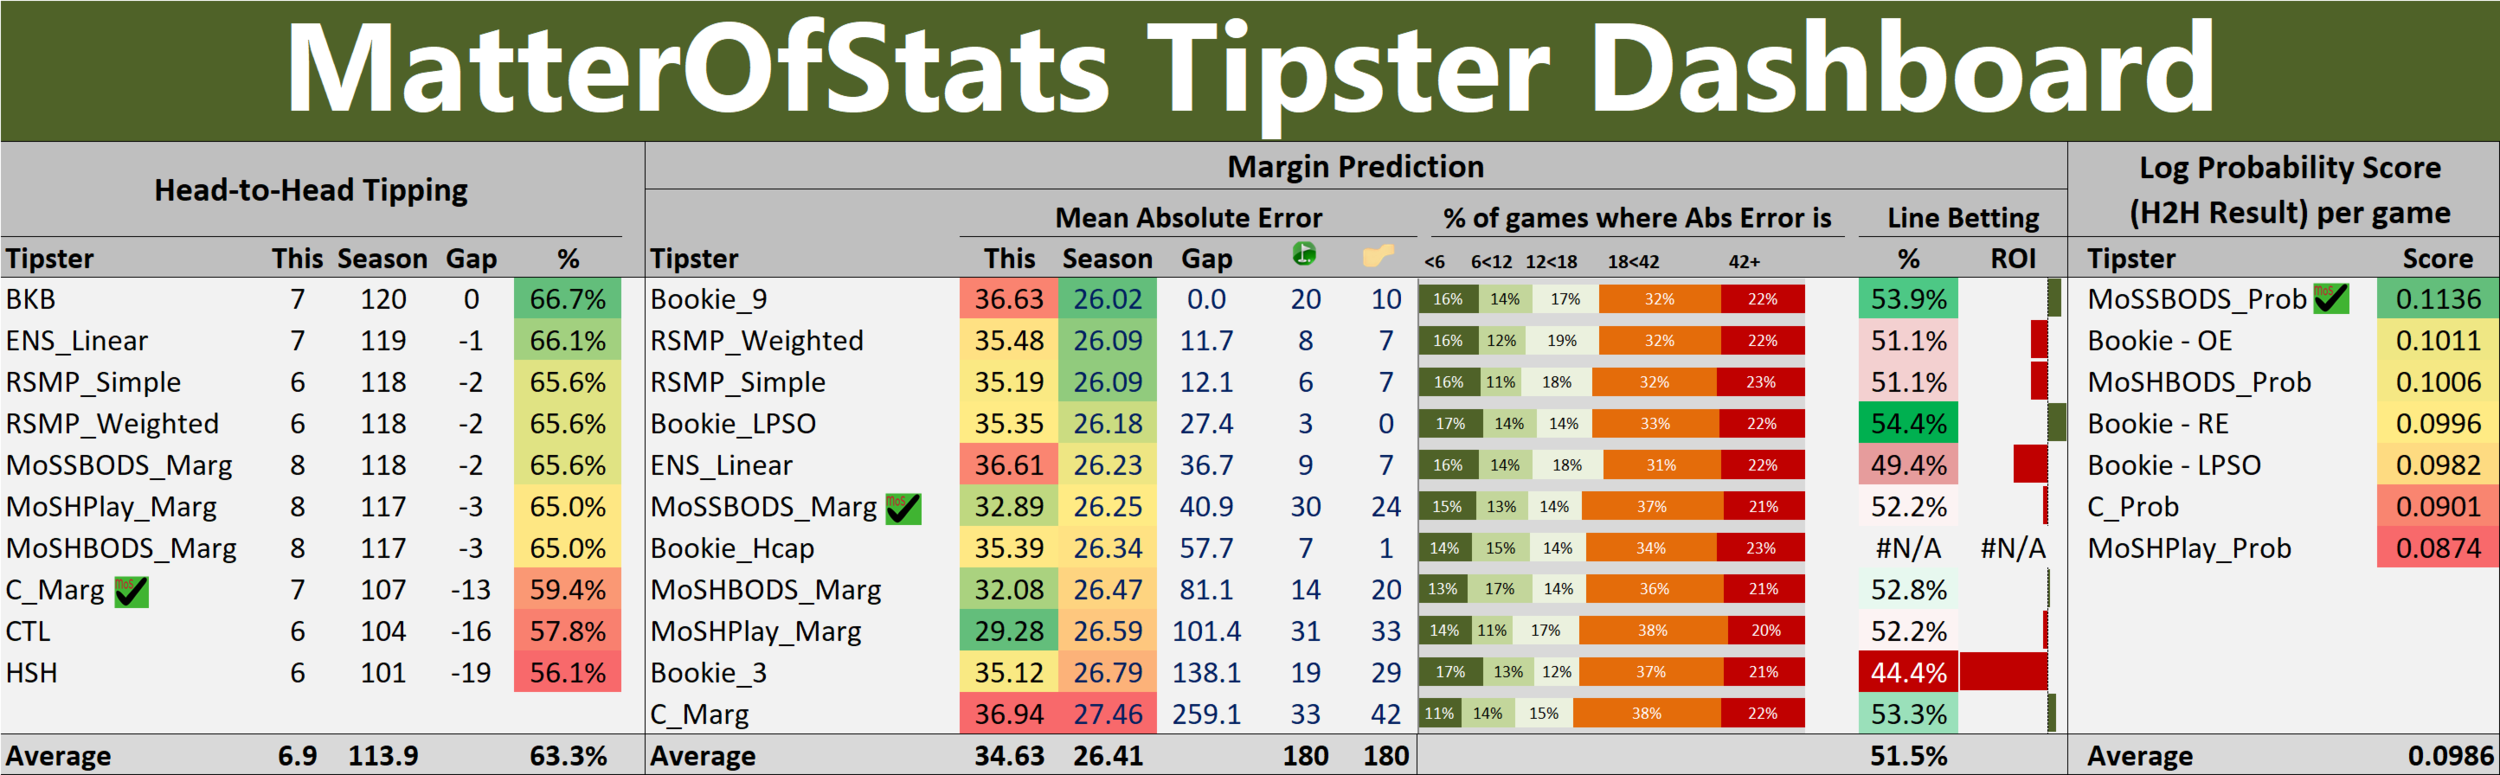 R21 - Tipster Dashboard.png